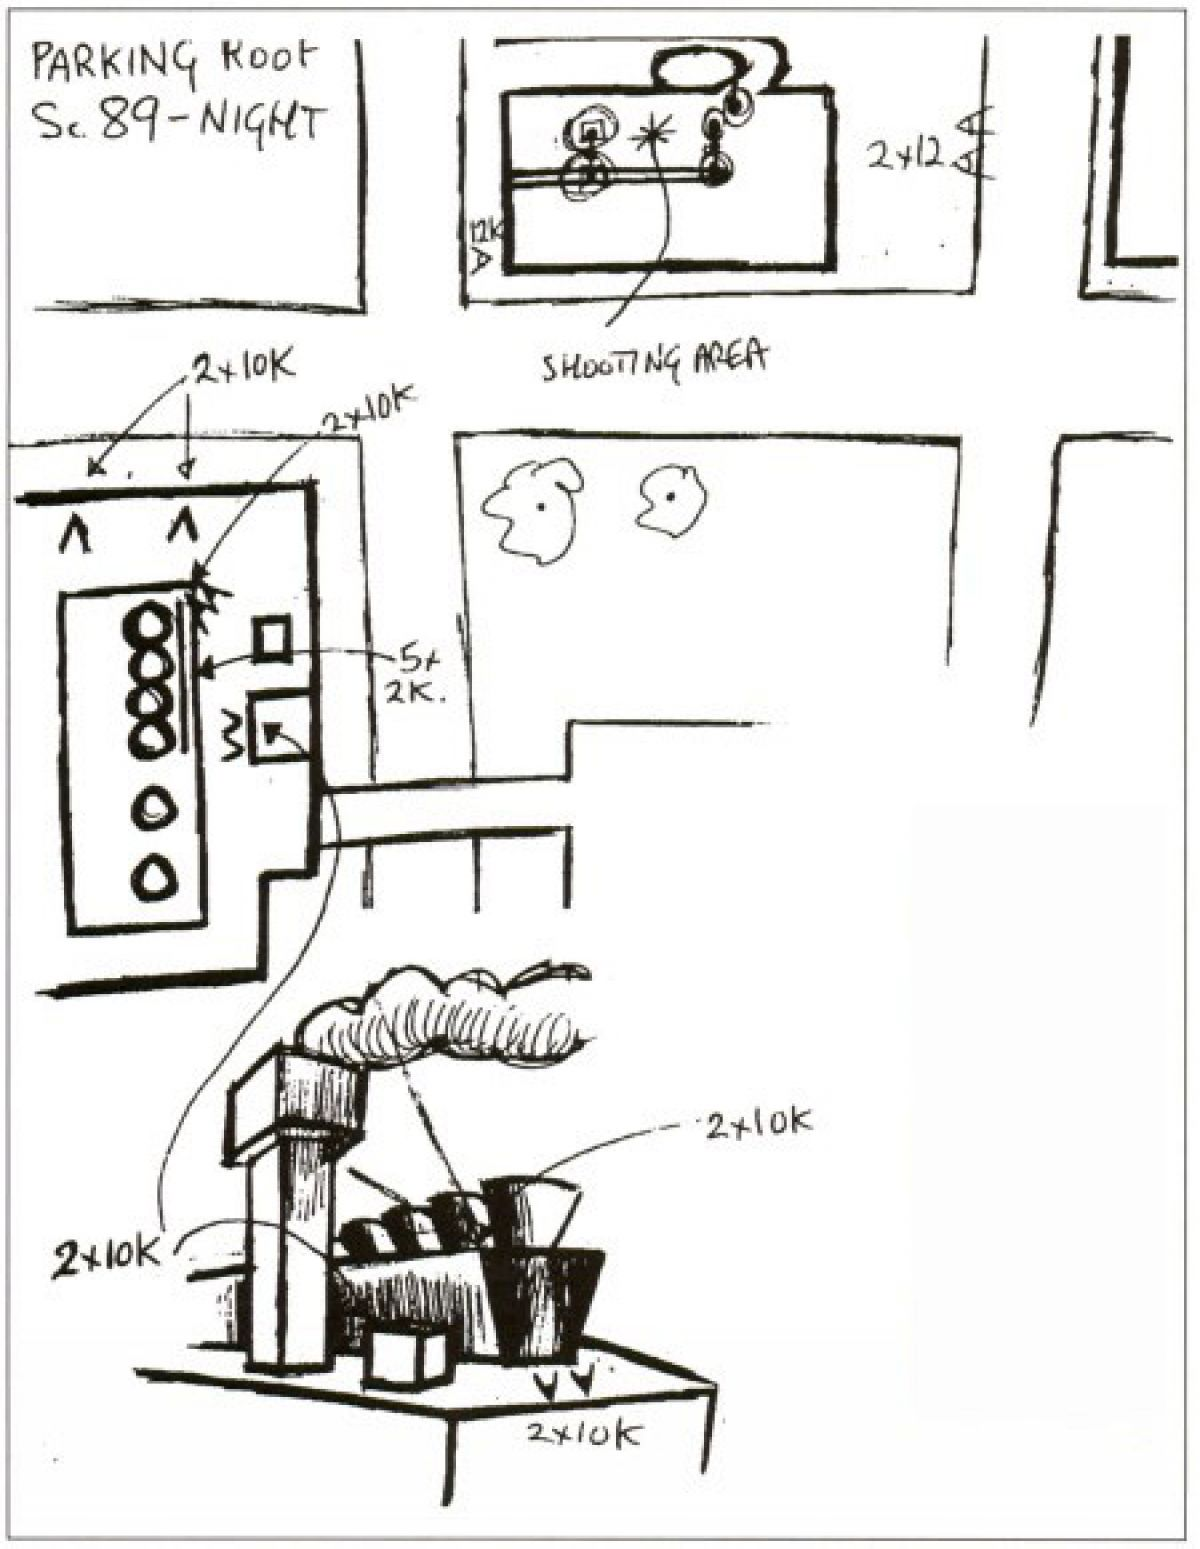 Deakins' sketch of the roof-top parking-garage location (above) and corresponding images from the